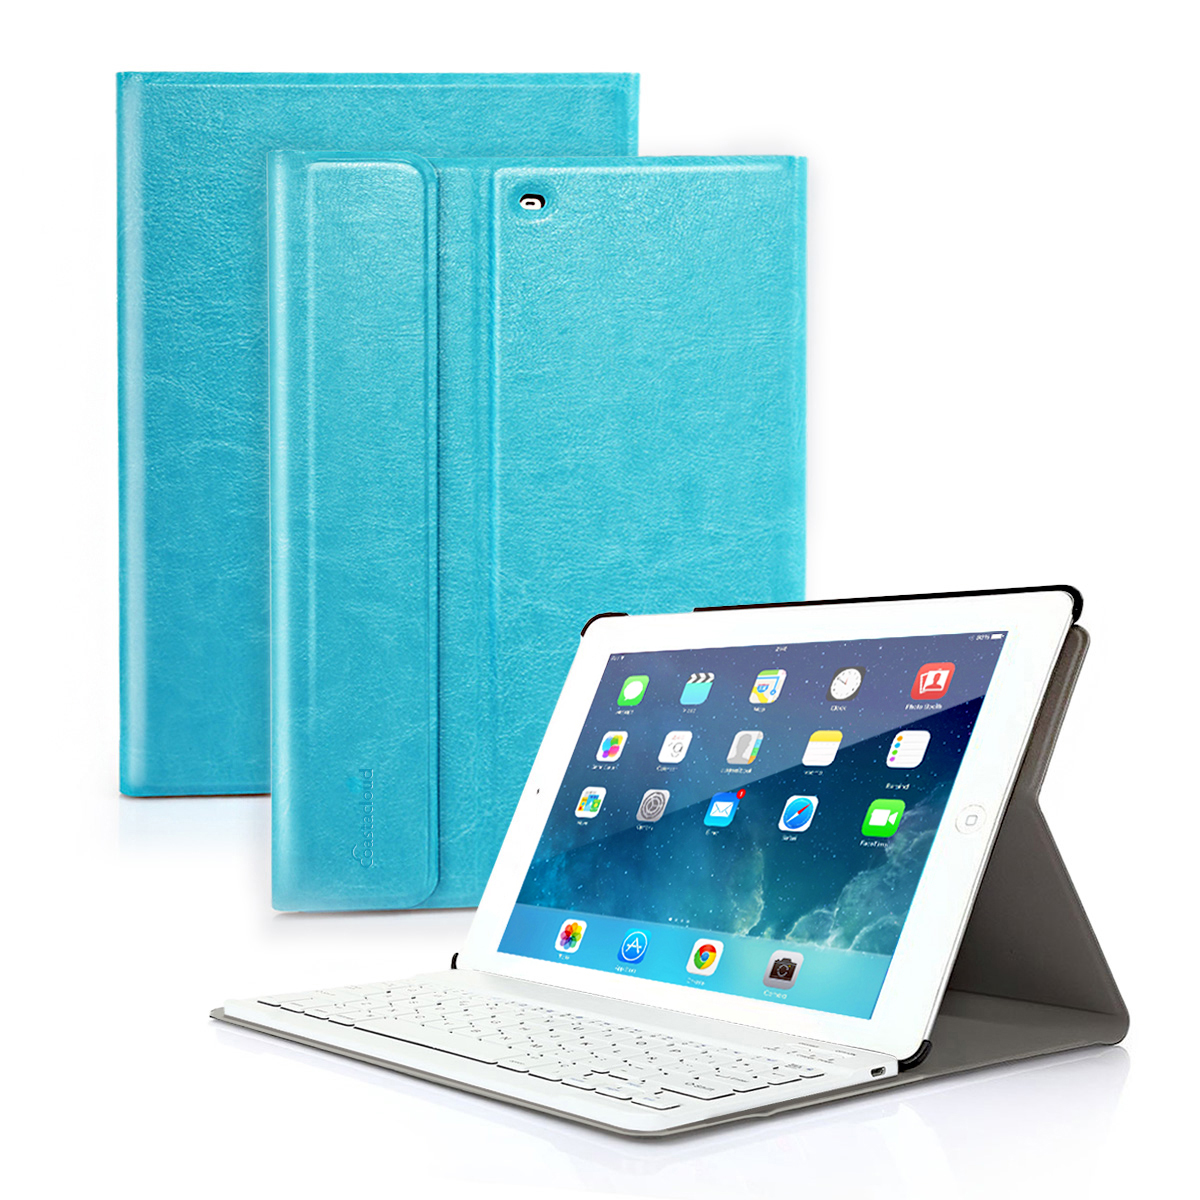 CoastaCloud For 9.7 inch Apple NEW iPad 2017 Wireless Bluetooth Keyboard with Stand Folio Case Cover Rechargeable USB Cable Removeable Keyboard PU Leather